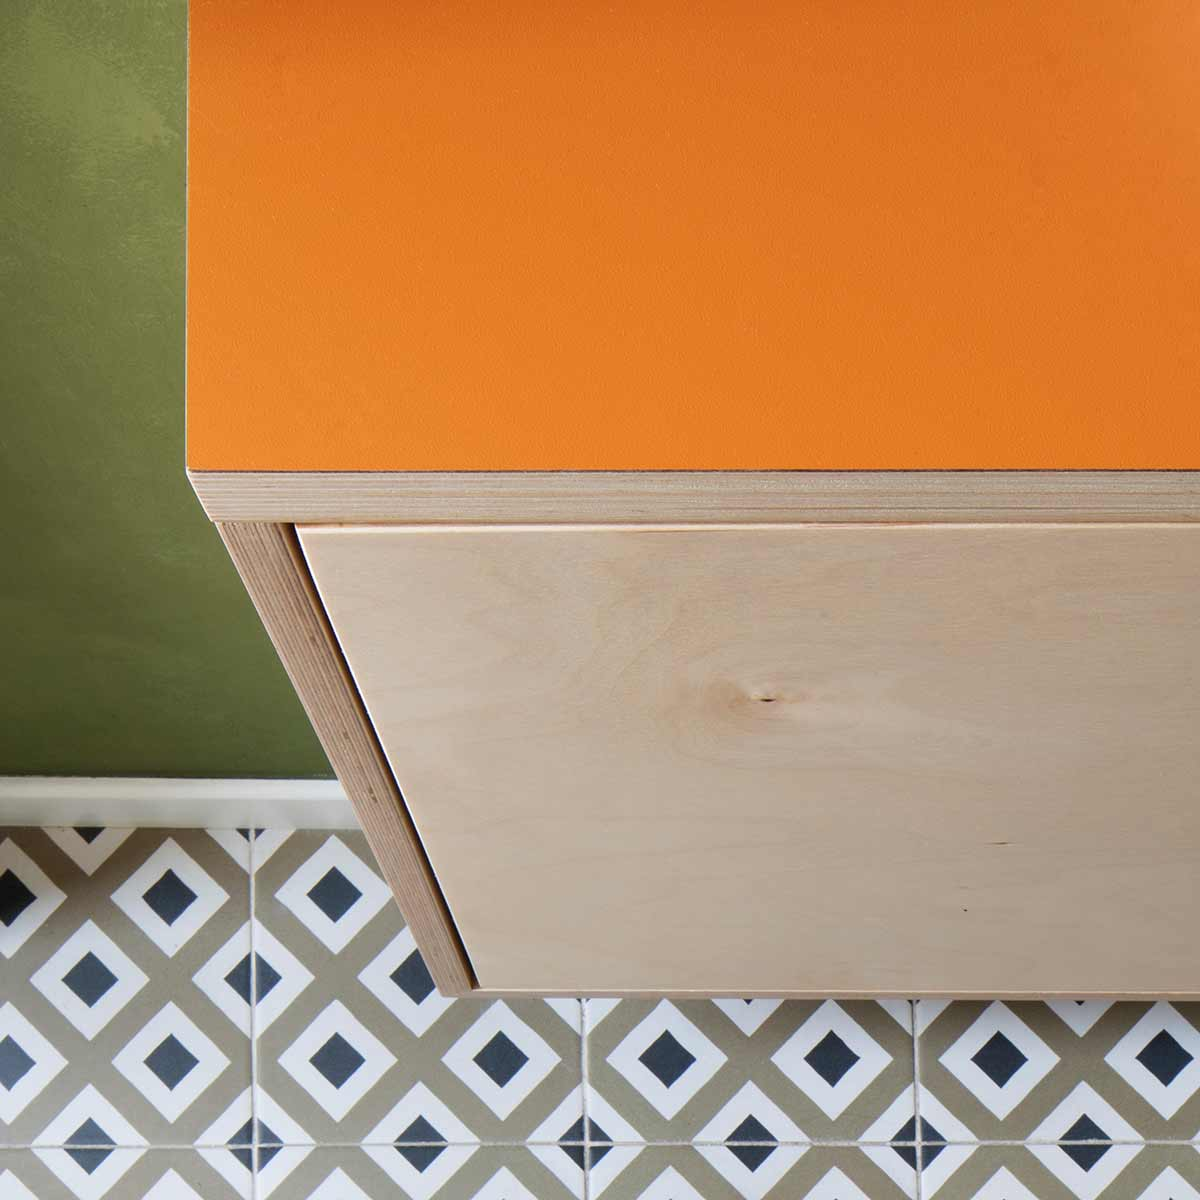 kickoffice casa dgp bathroom sink top orange wood tiles floor